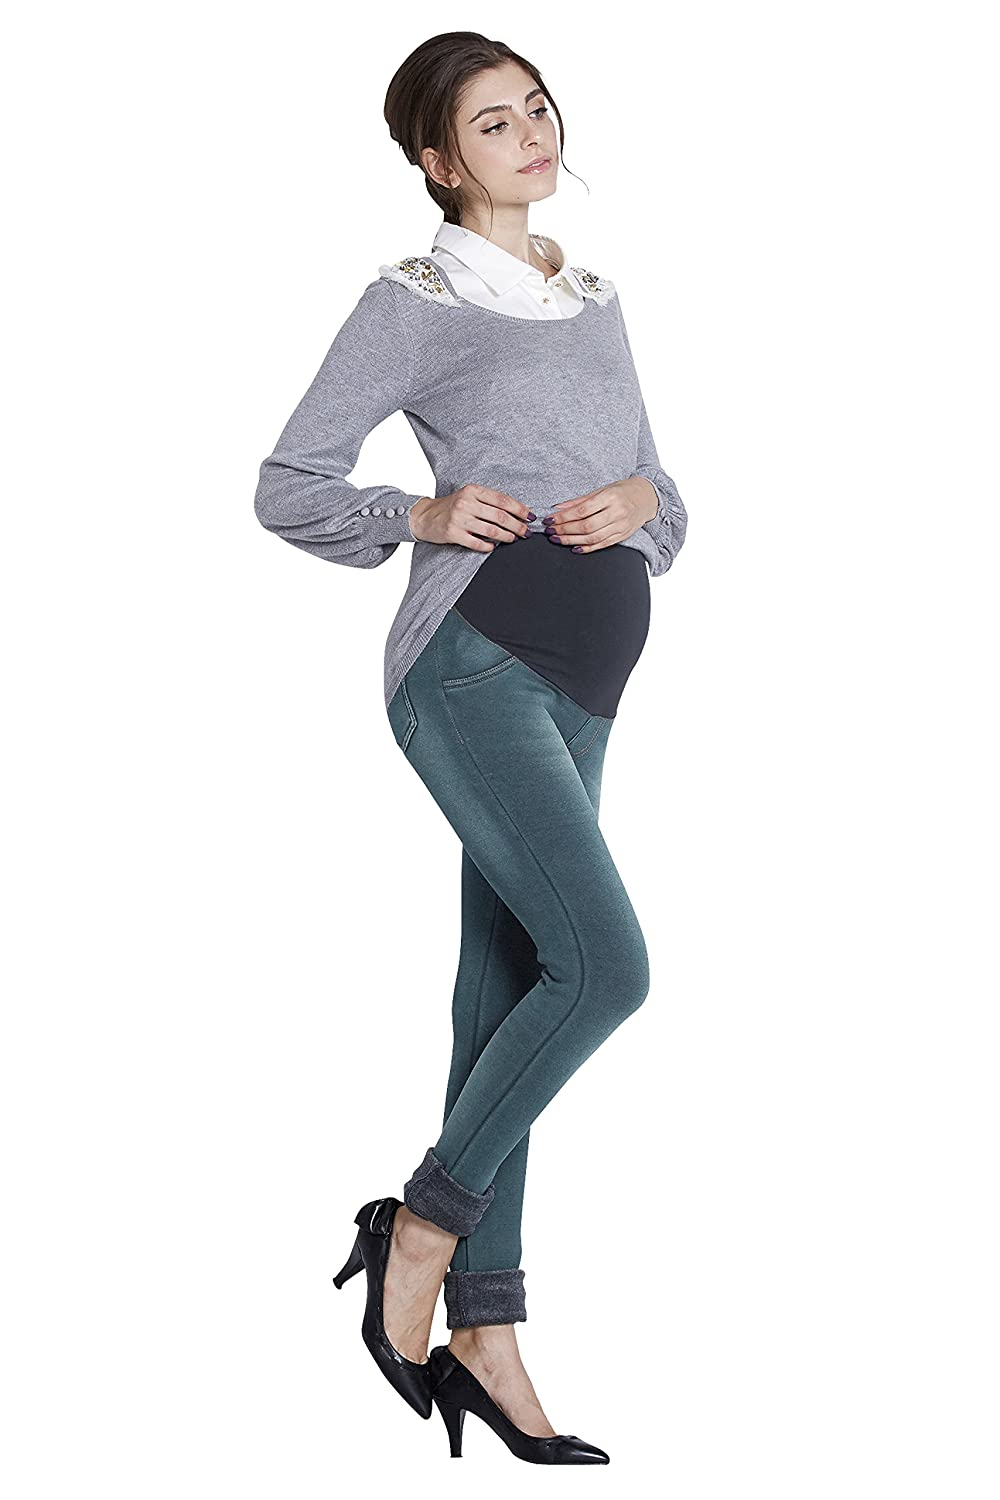 Sweet Mommy Maternity Fleece-Lined Denim Skinny Jeans sp5137